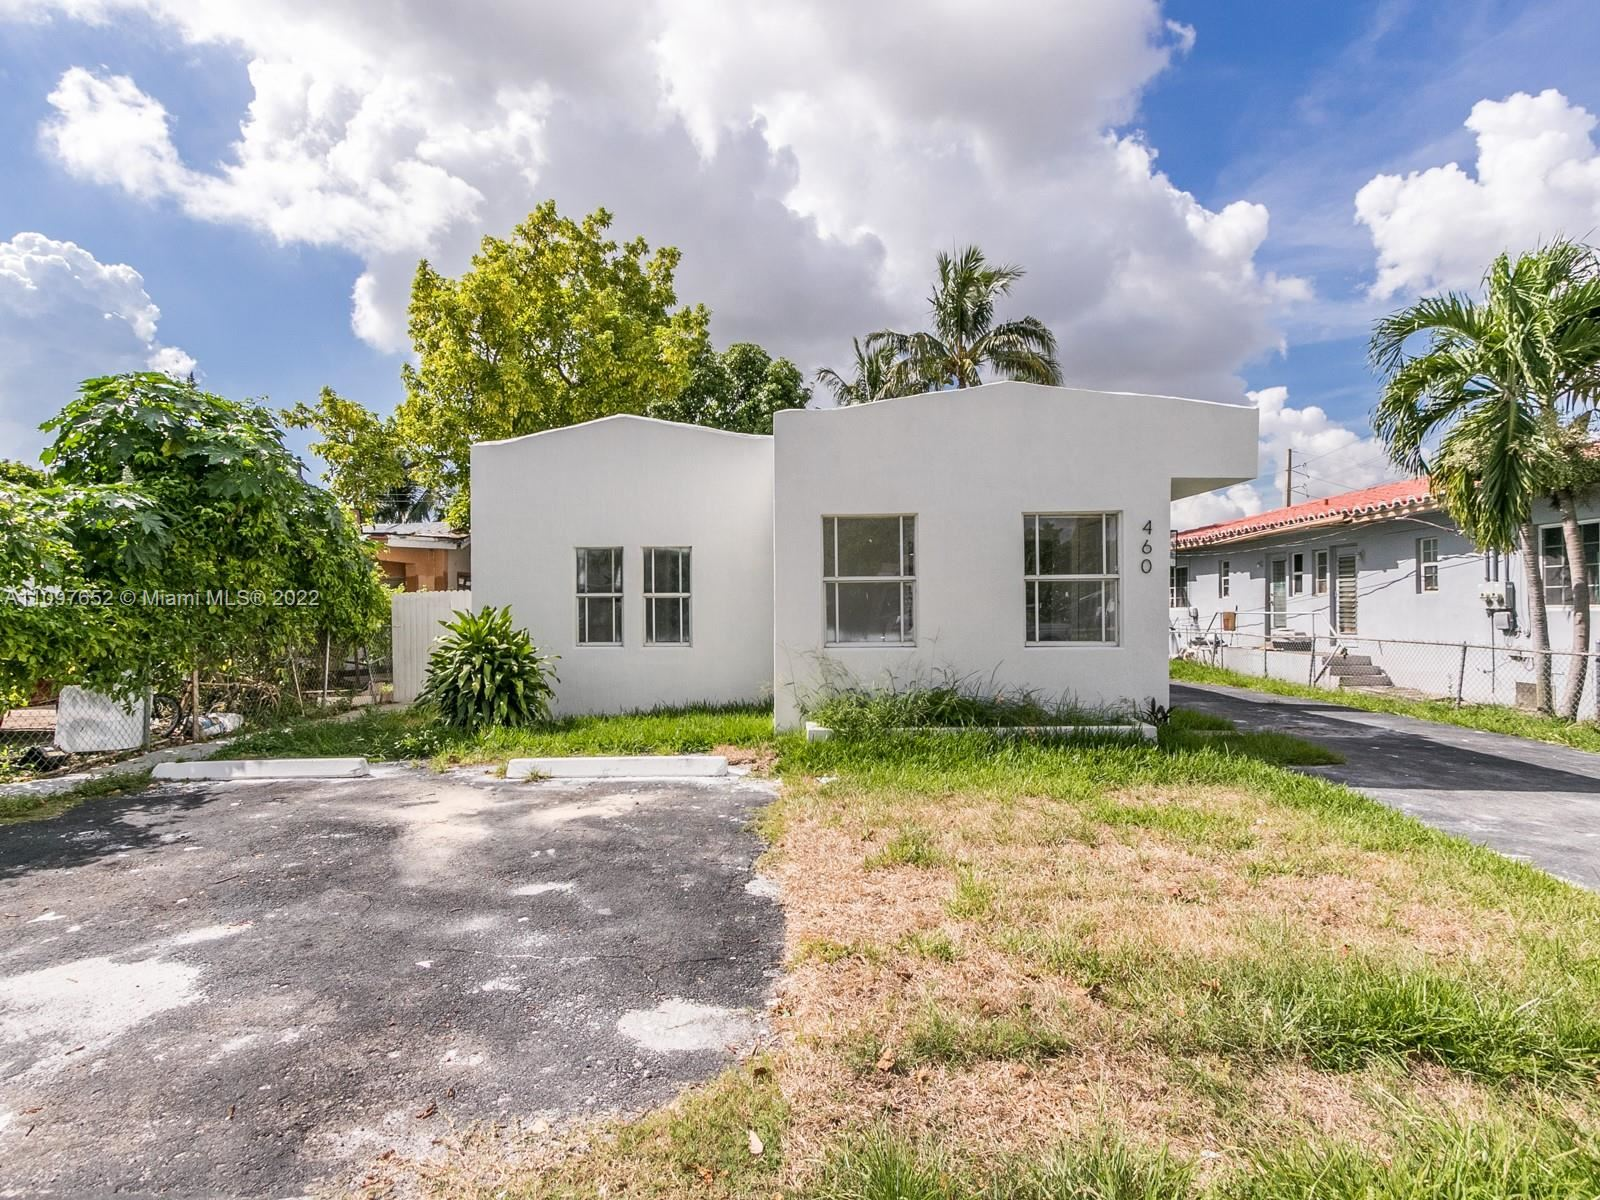 460 NW 82nd Ter, Miami, FL 33150 - #: A11097652